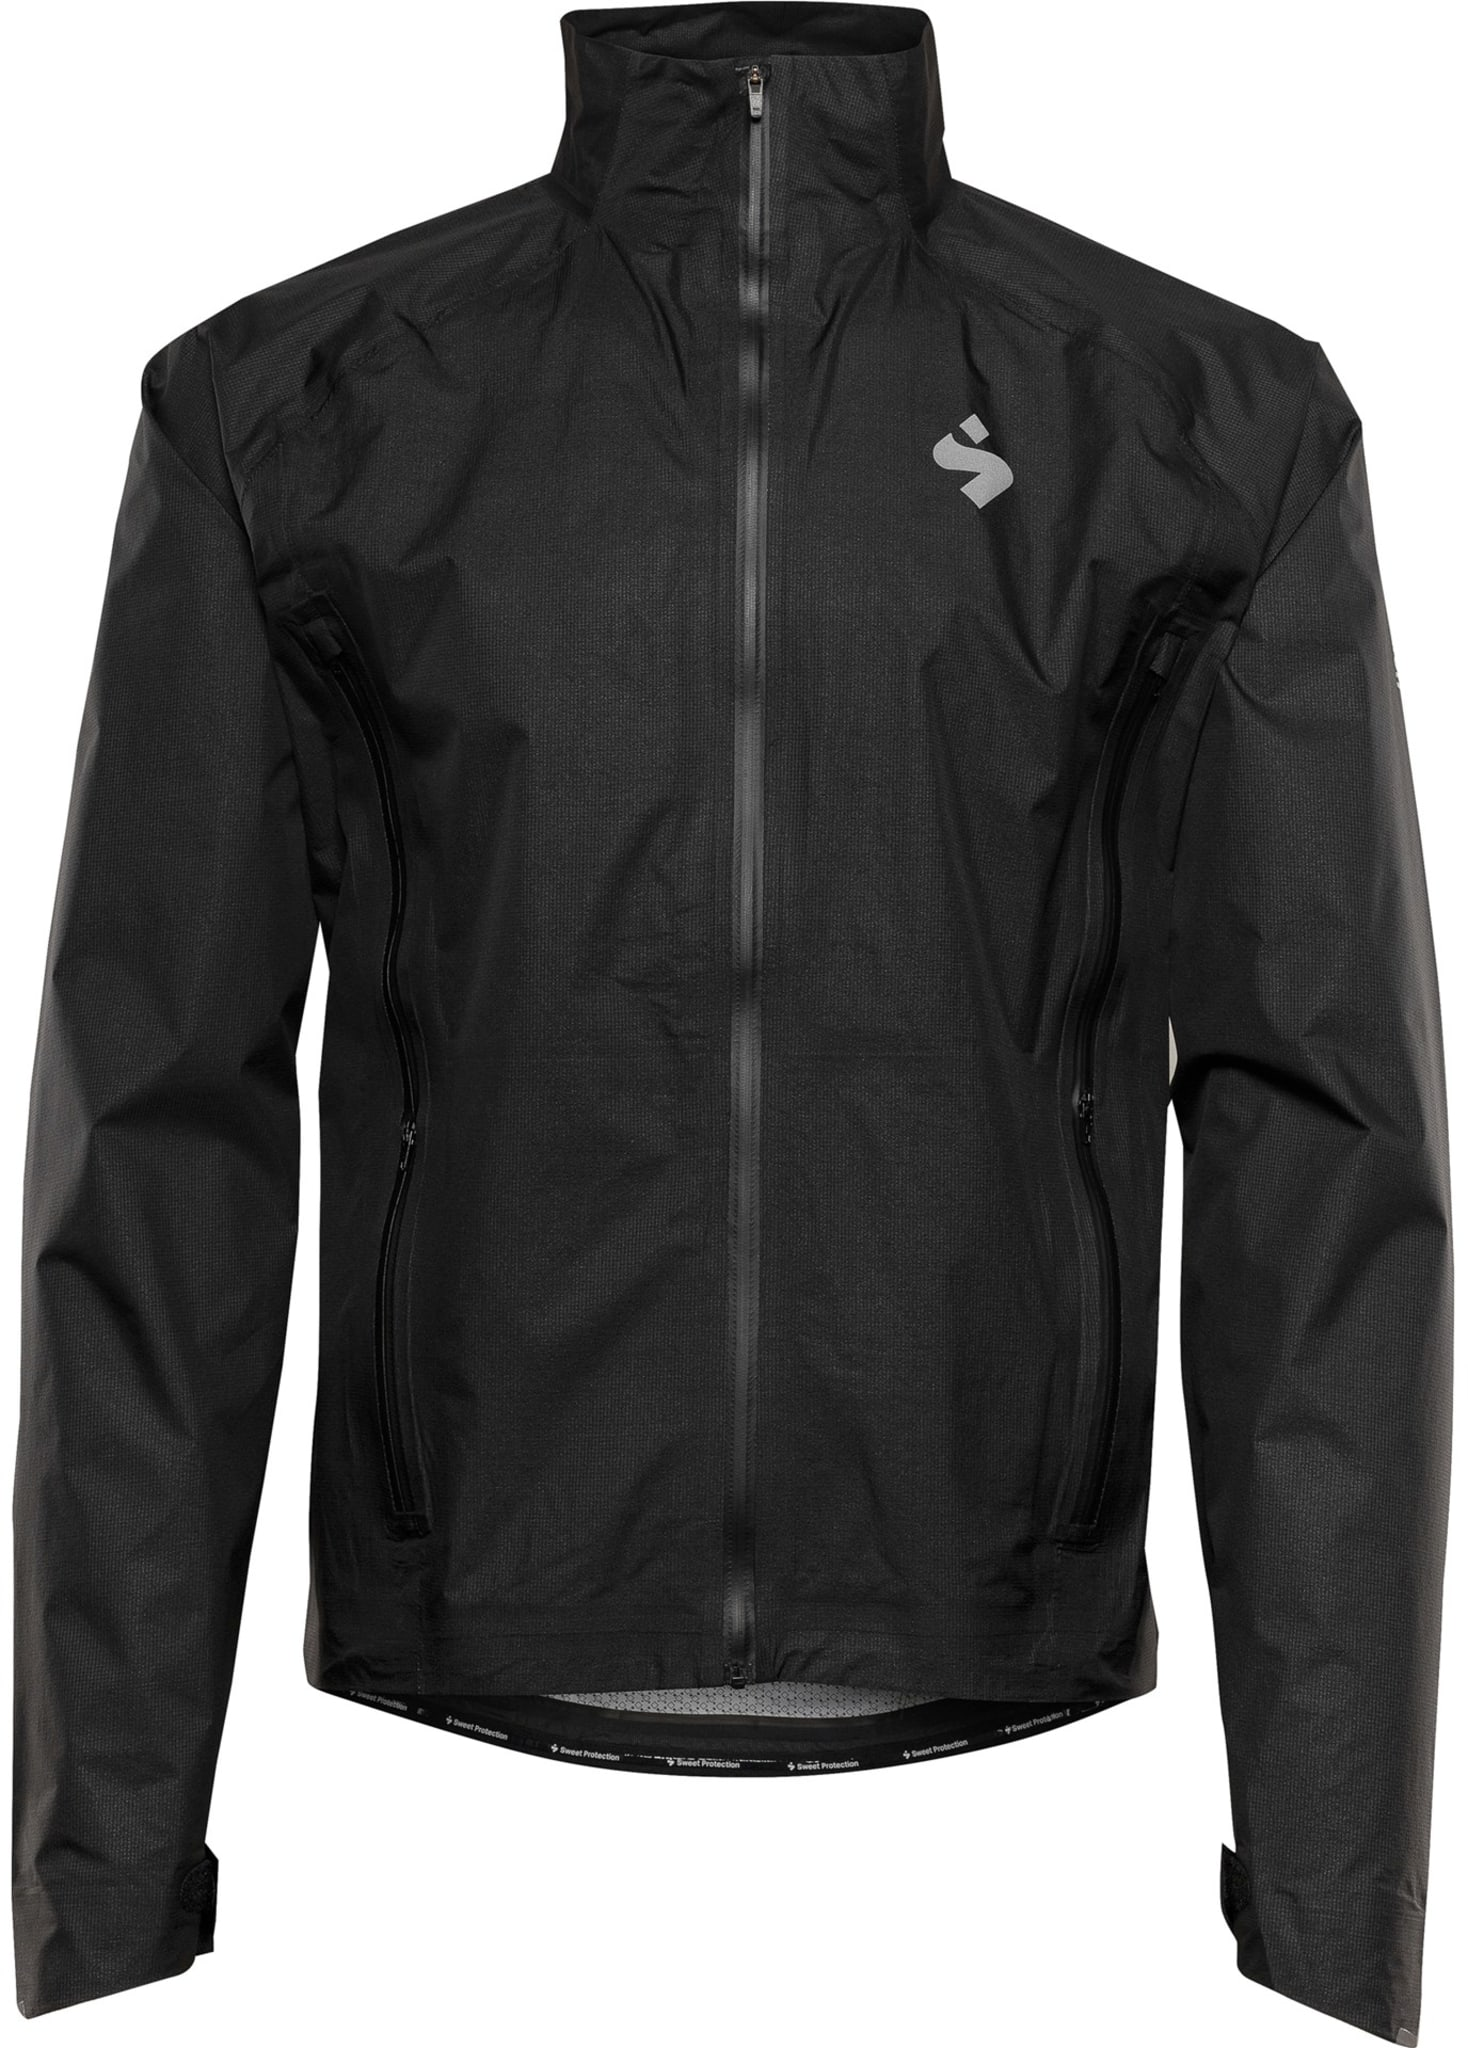 Hunter DryZeal Jacket